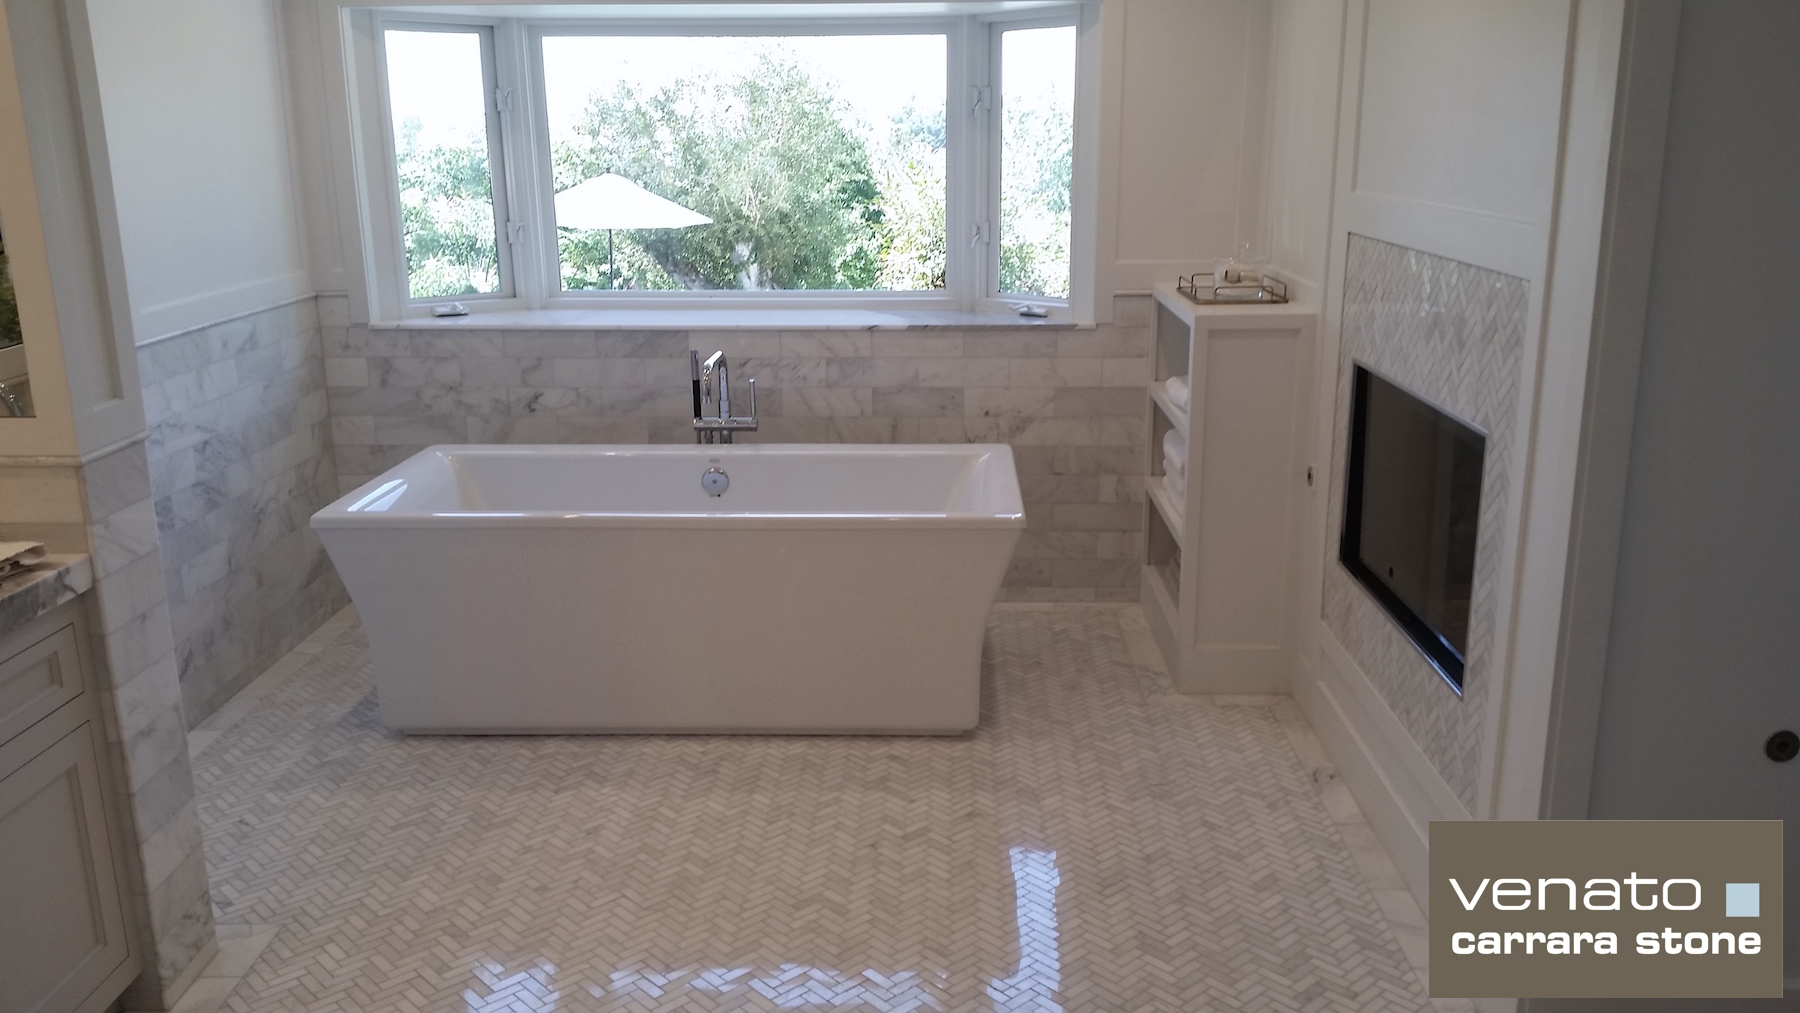 Carrara Venato Polished Bathroom The Builder Depot Blog